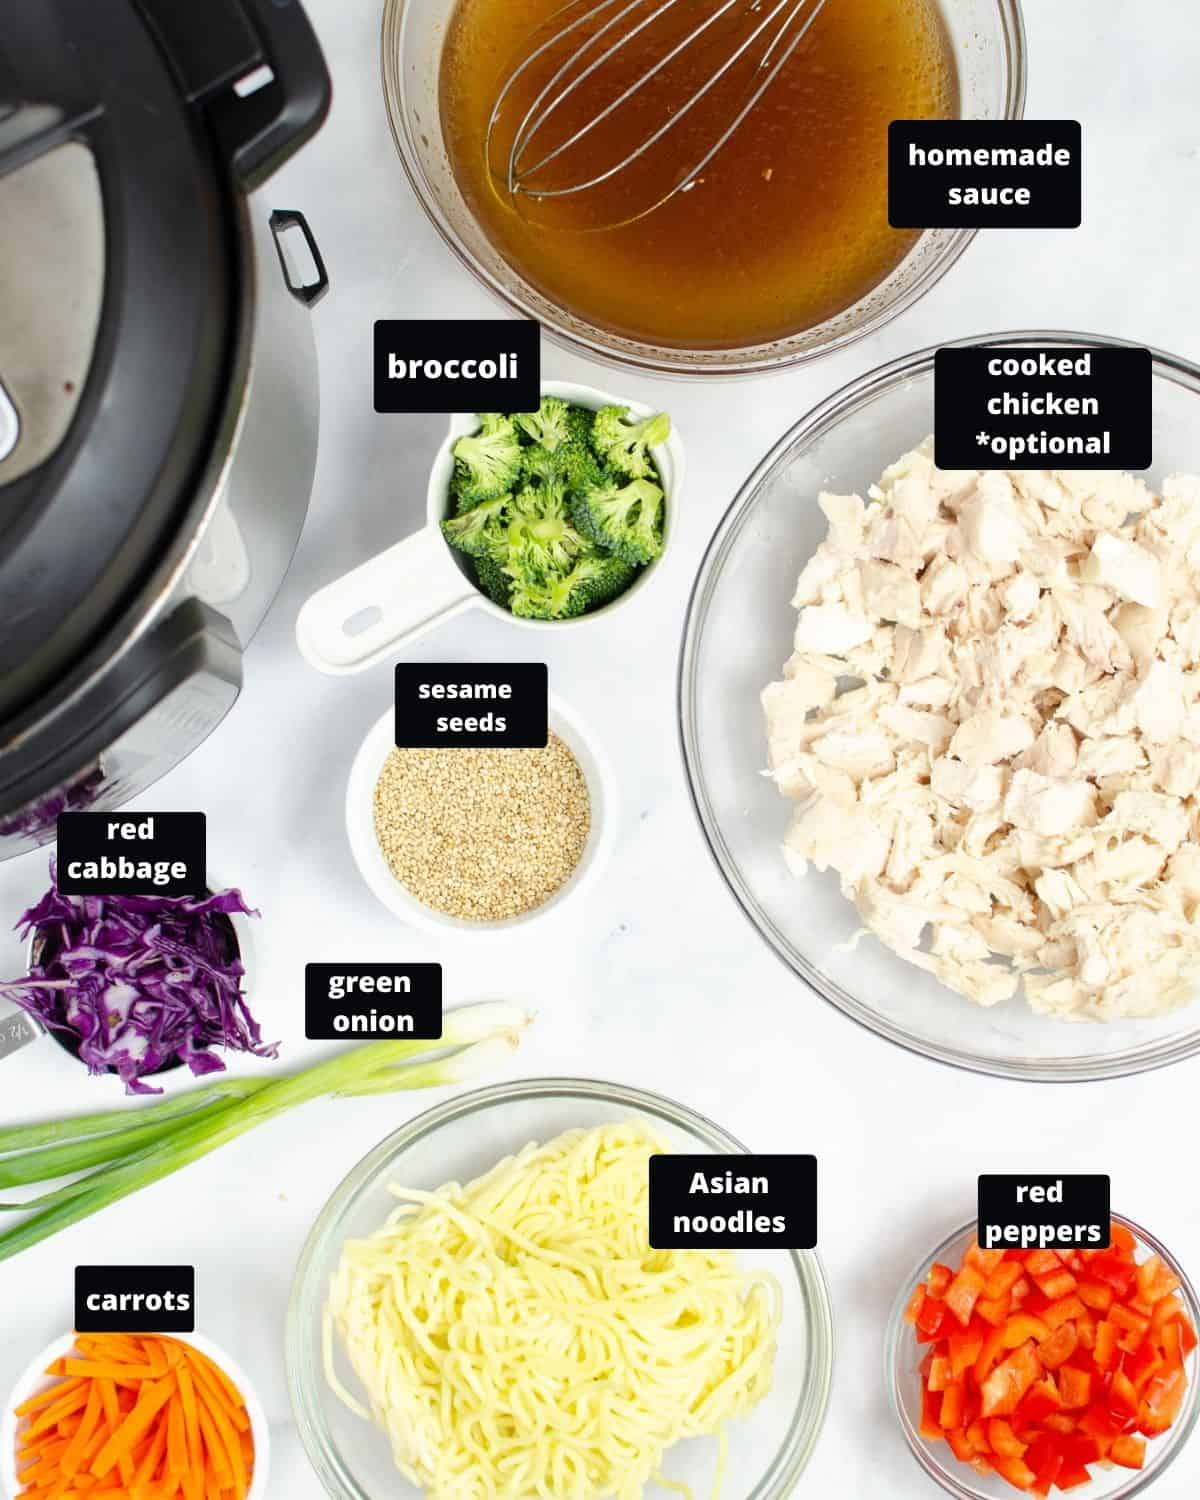 Ingredients to make Chow Mein in the Instant Pot